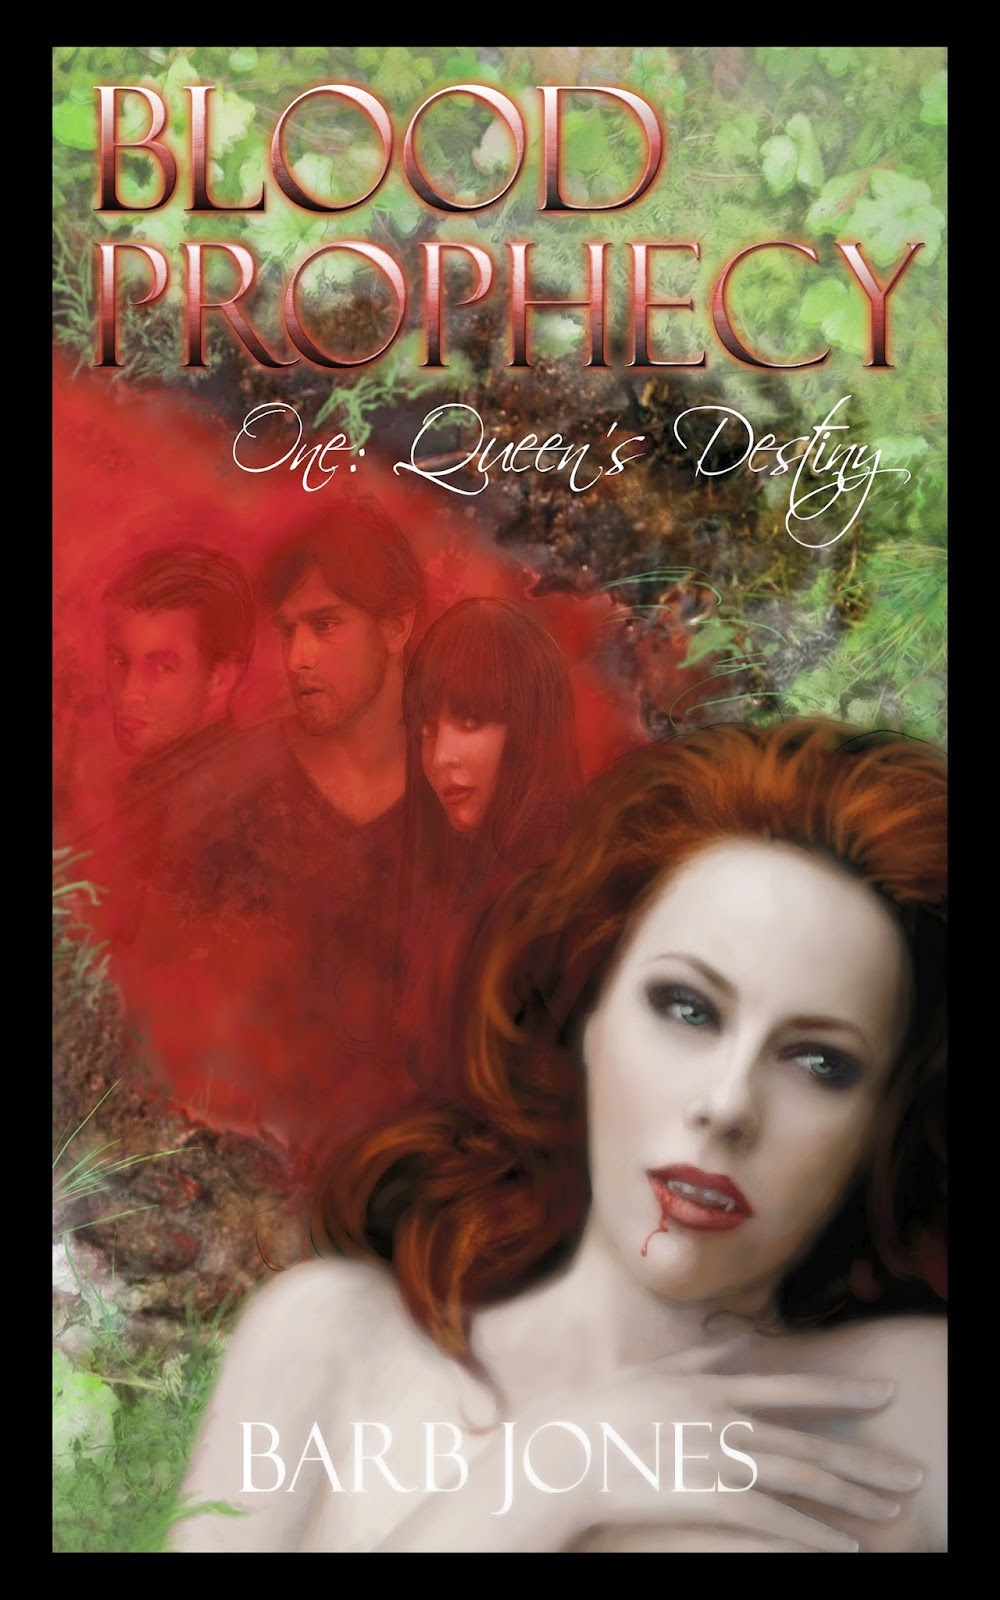 http://www.amazon.com/Queens-Destiny-Blood-Prophecy-One-ebook/dp/B00NCN1CJU/ref=la_B0058W93RQ_1_1?s=books&ie=UTF8&qid=1419902006&sr=1-1